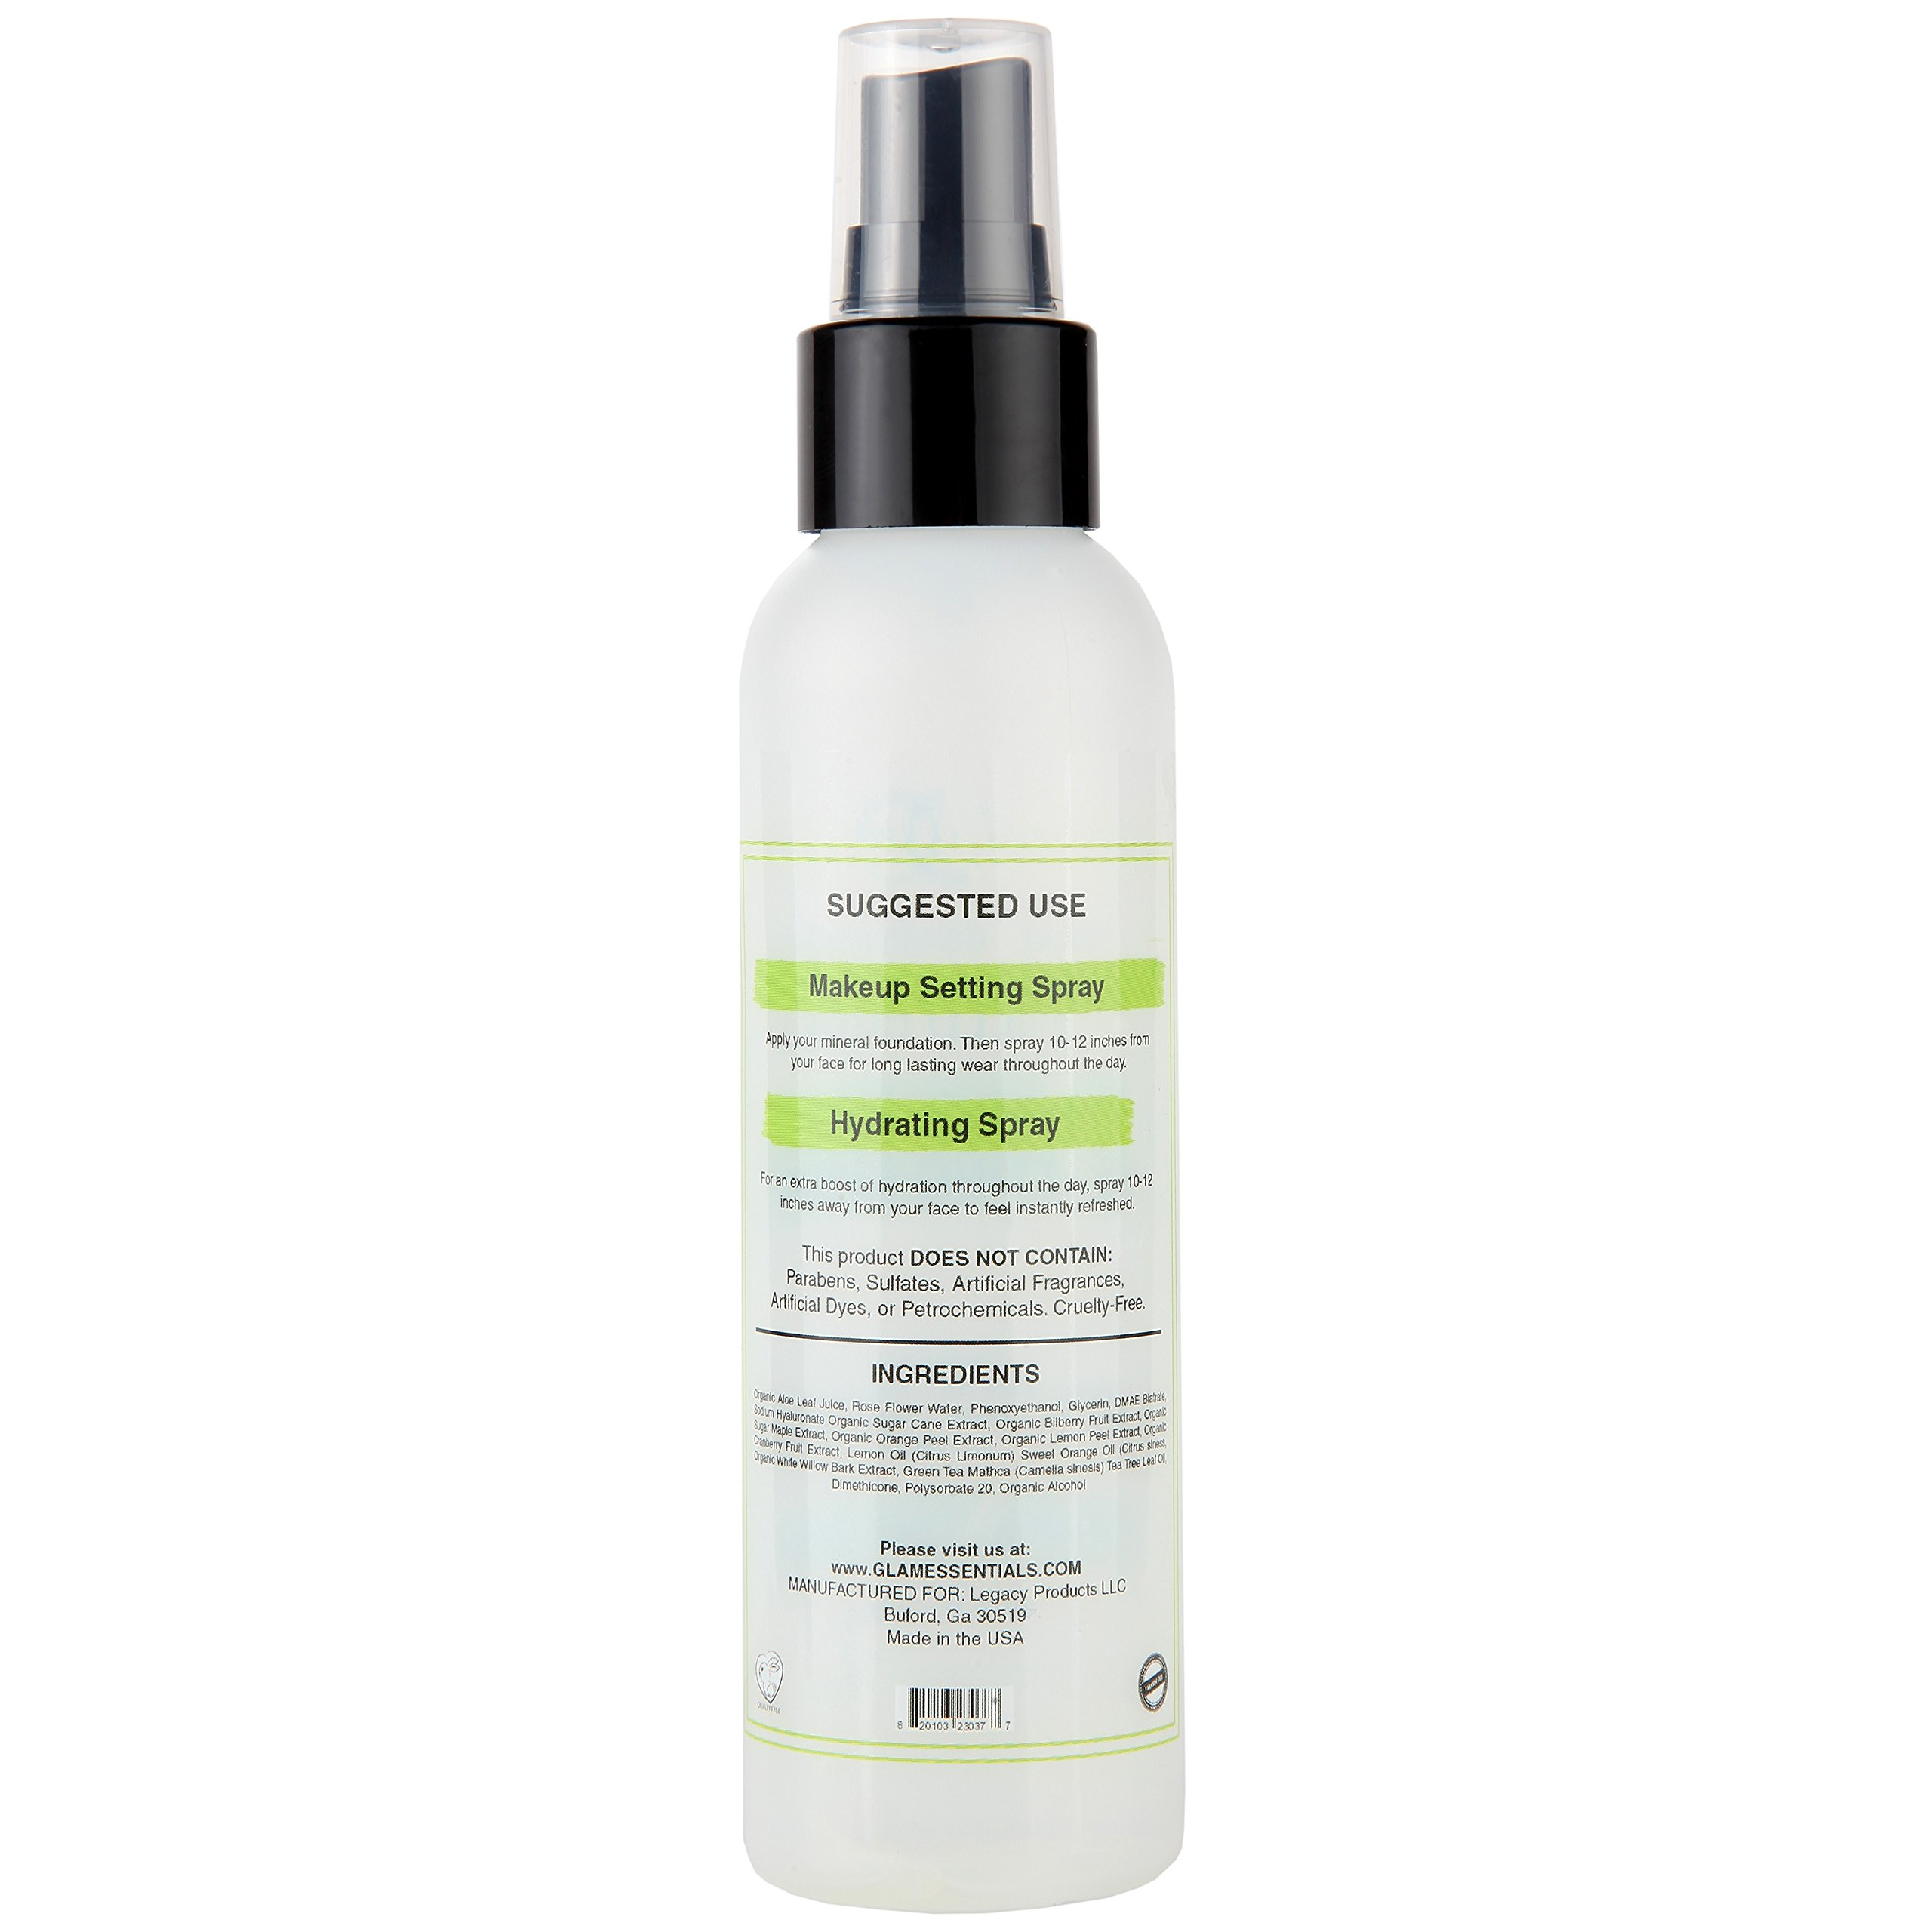 Makeup Setting Spray With Matcha Green Tea, Hyaluronic Acid and Rose Water Gives A Matte Flawless Finish All Day, Repairs Sun Damage Skin Paraben and Cruelty-Free